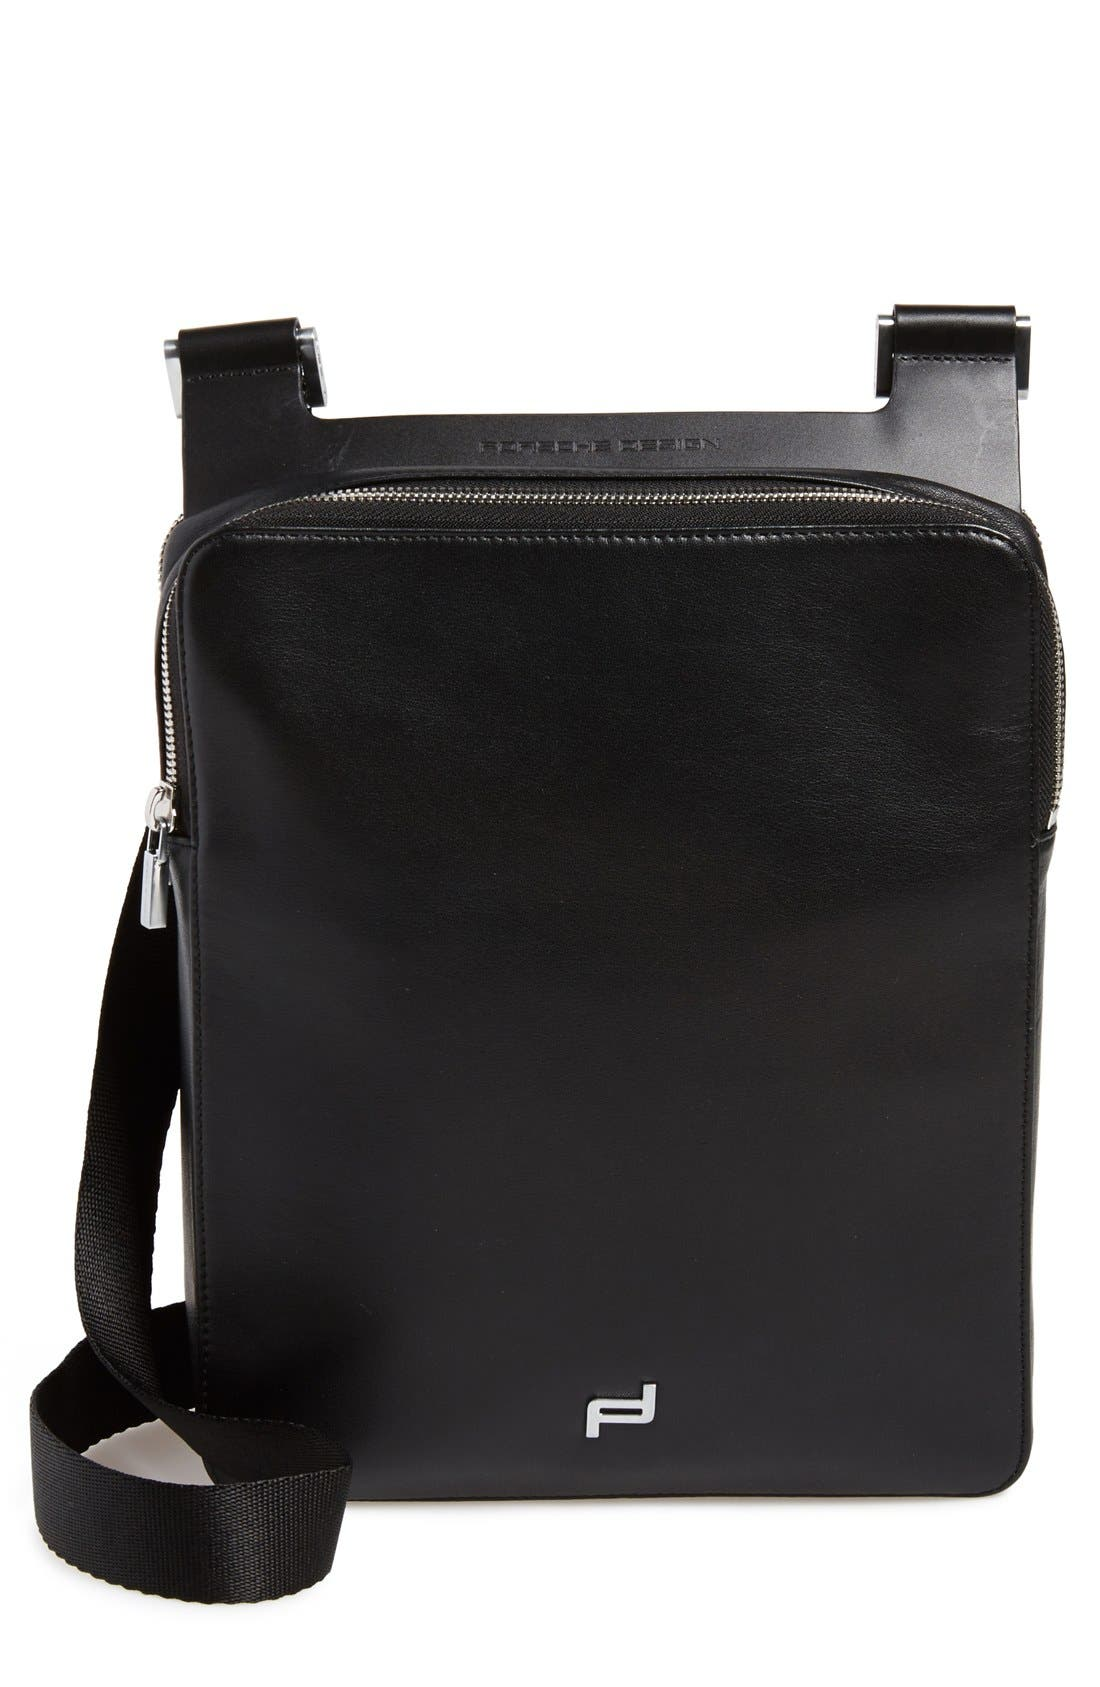 Porsche Design 'Shyrt' City Bag